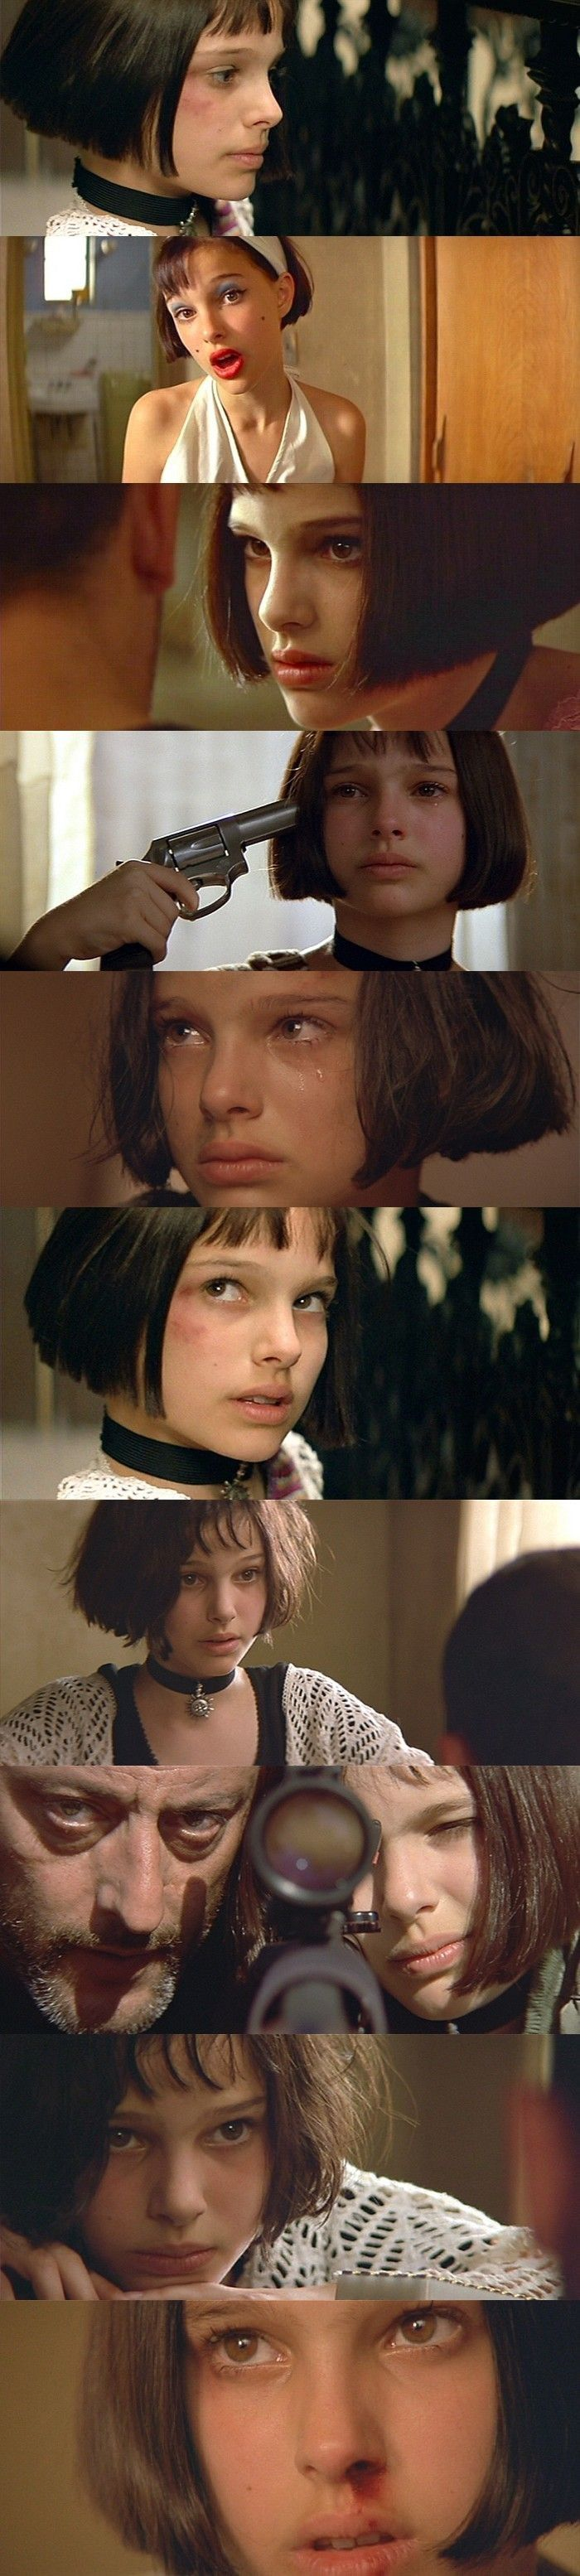 Mathilda exact Replica Choker as seen on Naralie Portman in The Professional by Dizaster In A Halo #mathilda #leontheprofessional #theorofessional #natalieportman #alternativefashion #altstyle #sunnecklace